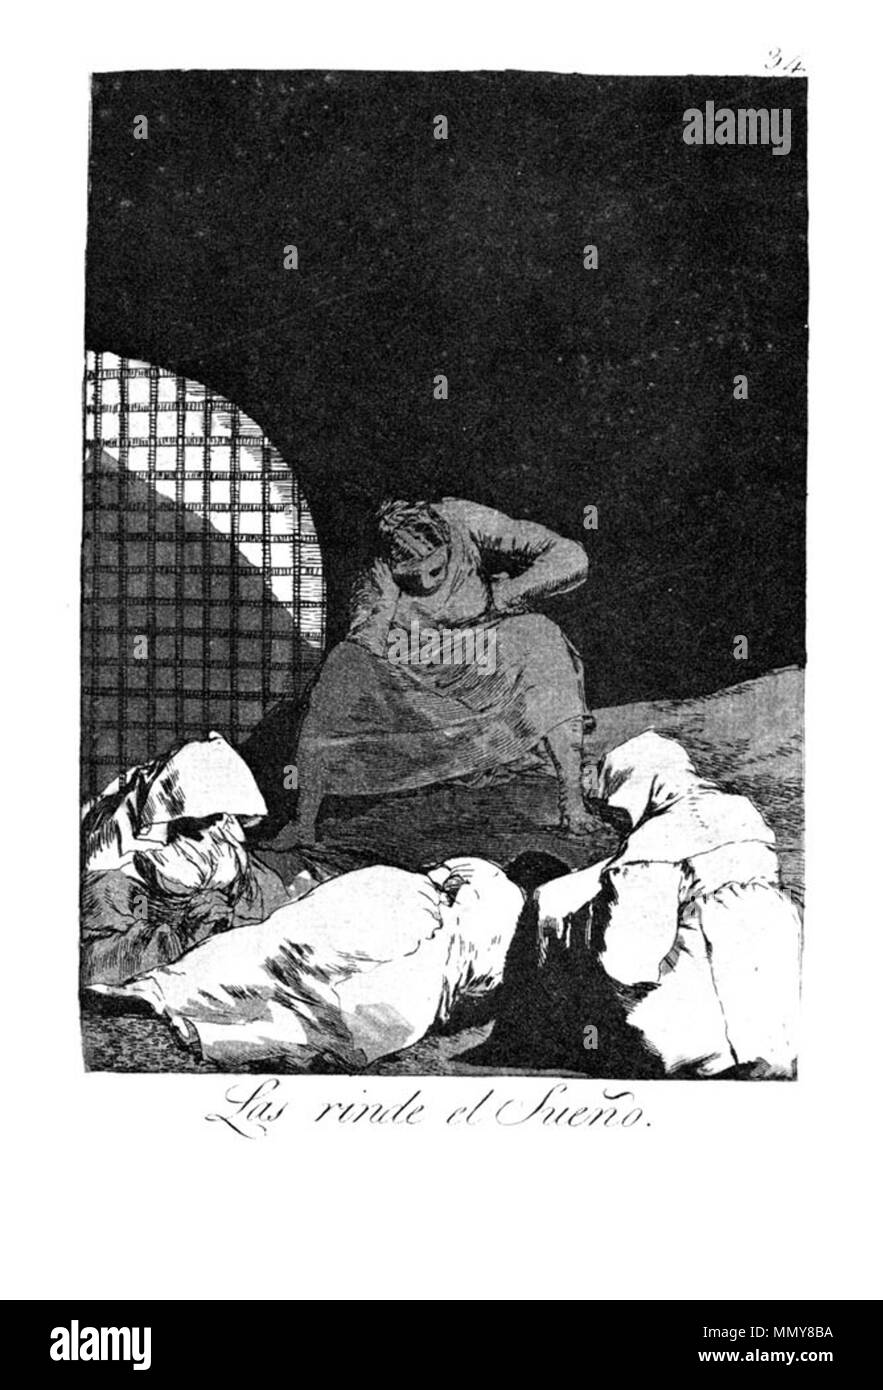 . Los Caprichos is a set of 80 aquatint prints created by Francisco Goya for release in 1799.  . 1799.   Francisco Goya (1746–1828)   Alternative names Francisco Goya Lucientes, Francisco de Goya y Lucientes, Francisco José Goya Lucientes  Description Spanish painter, printmaker, lithographer, engraver and etcher  Date of birth/death 30 March 1746 16 April 1828  Location of birth/death Fuendetodos Bordeaux  Work location Madrid, Zaragoza, Bordeaux  Authority control  : Q5432 VIAF:?54343141 ISNI:?0000 0001 2280 1608 ULAN:?500118936 LCCN:?n79003363 NLA:?36545788 WorldCat Goya - Caprichos (34 - Stock Image